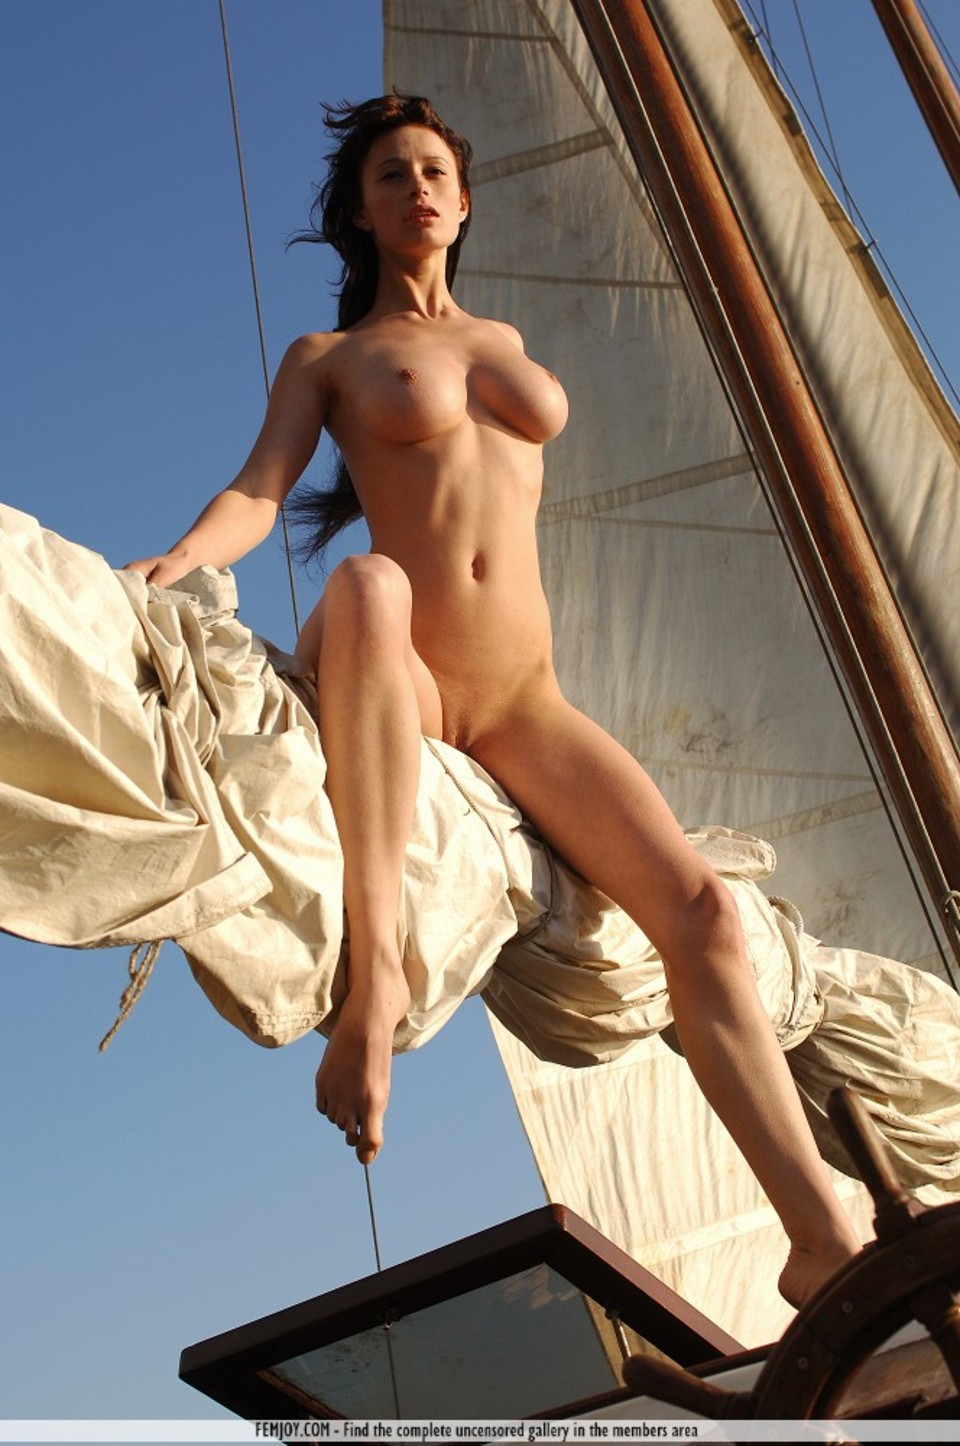 Pirates of the caribbean xxx model naked  adult clip